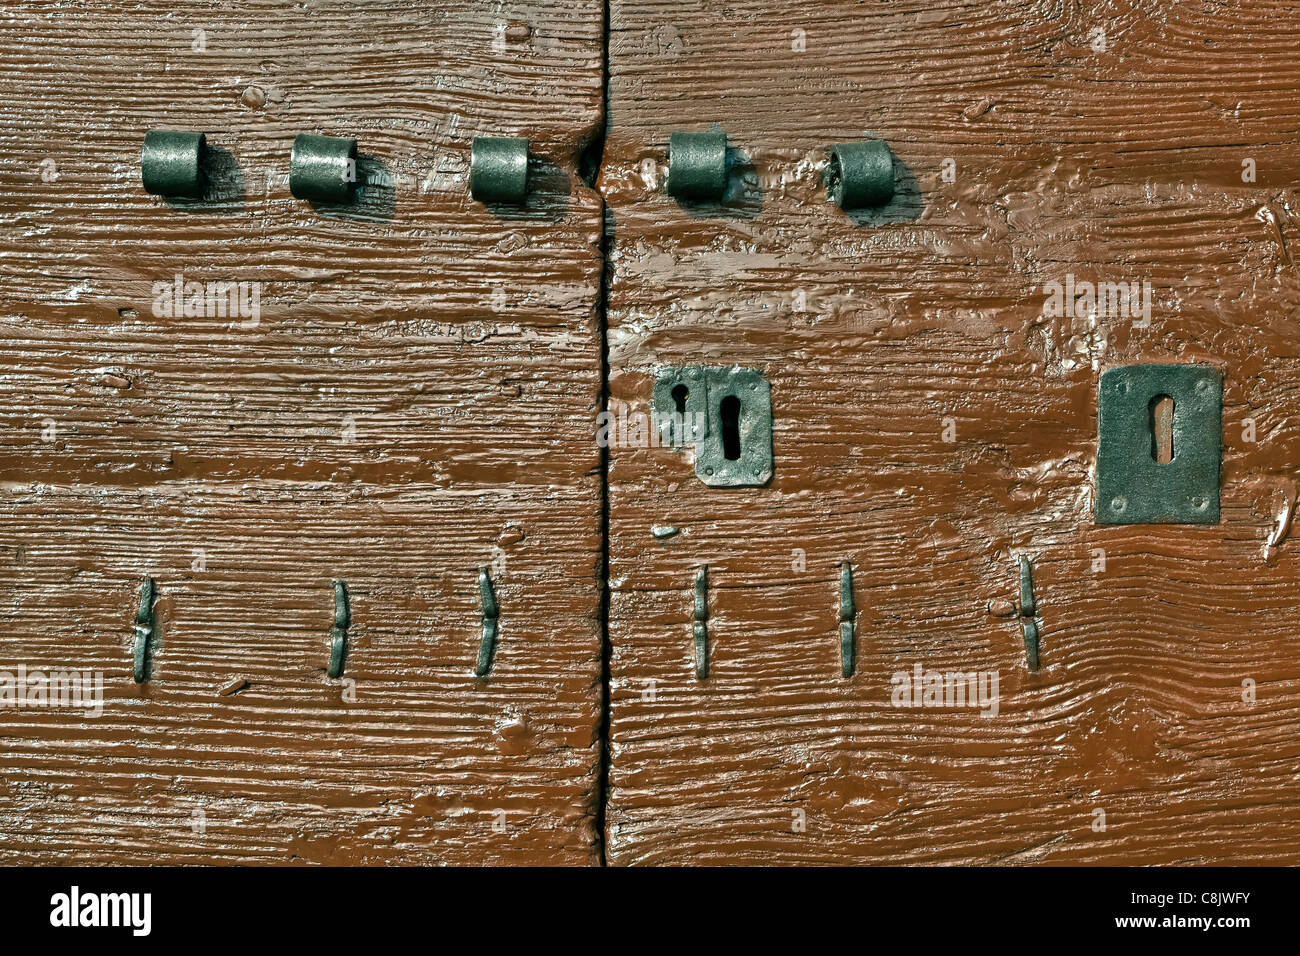 three different locks and latches on an old Italian wooden door - Stock Image